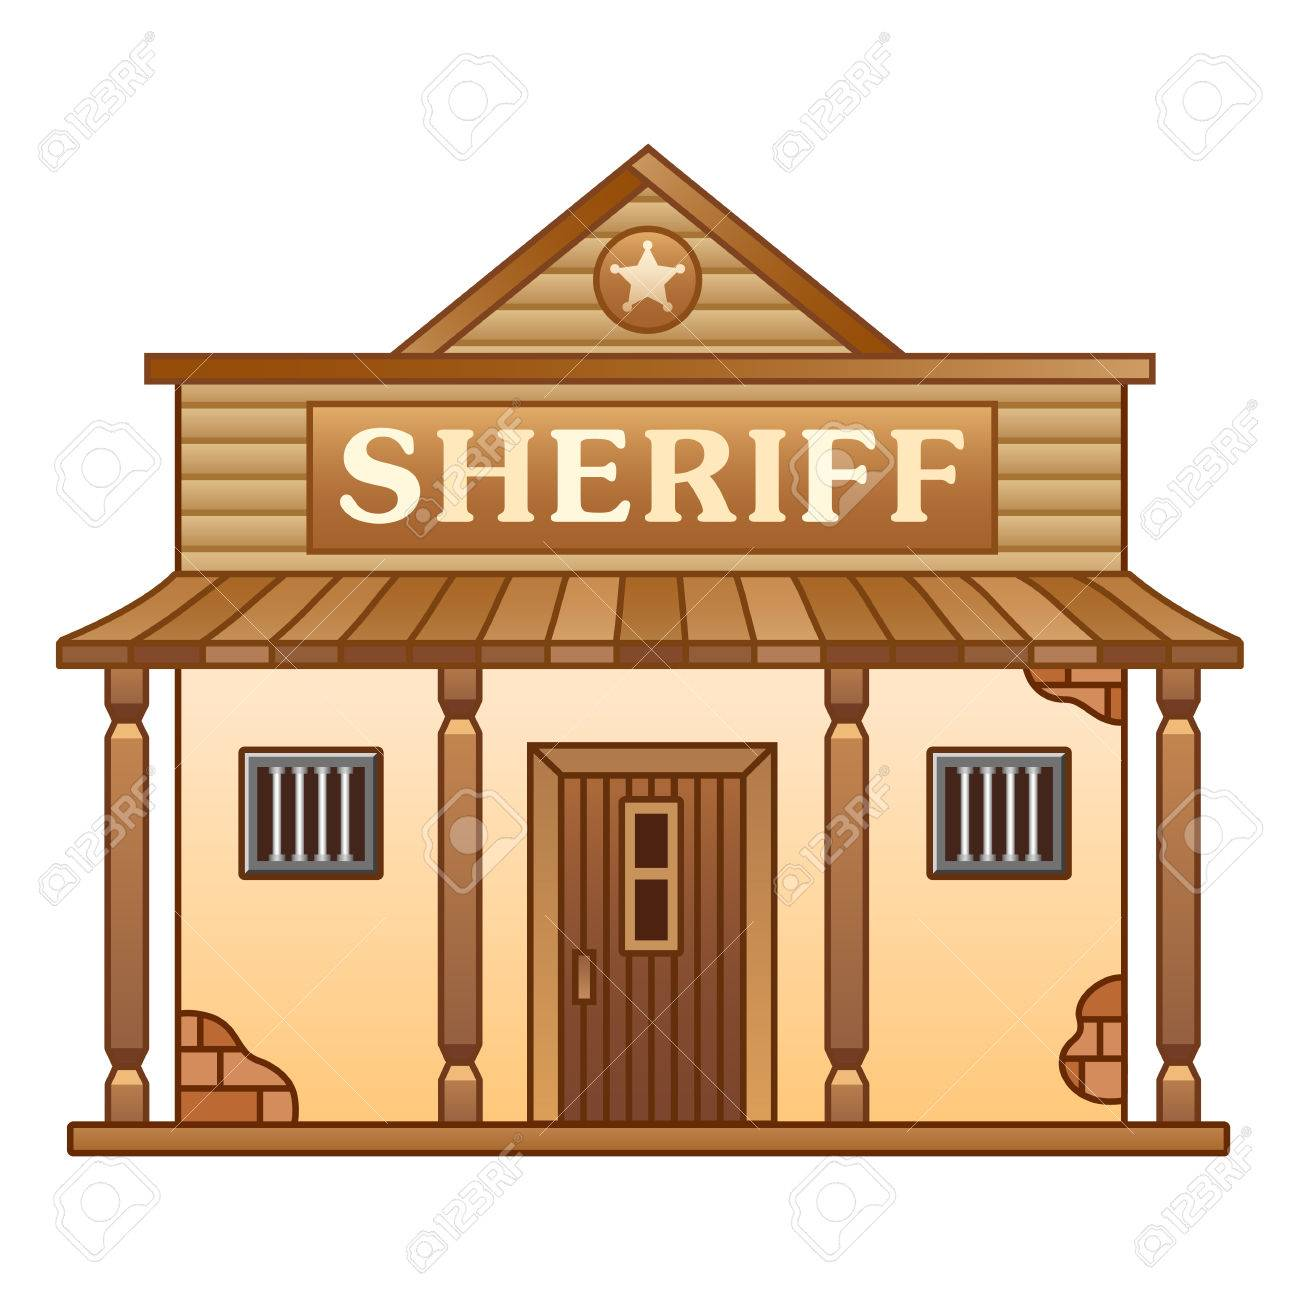 Sheriff Cartoon Wild West